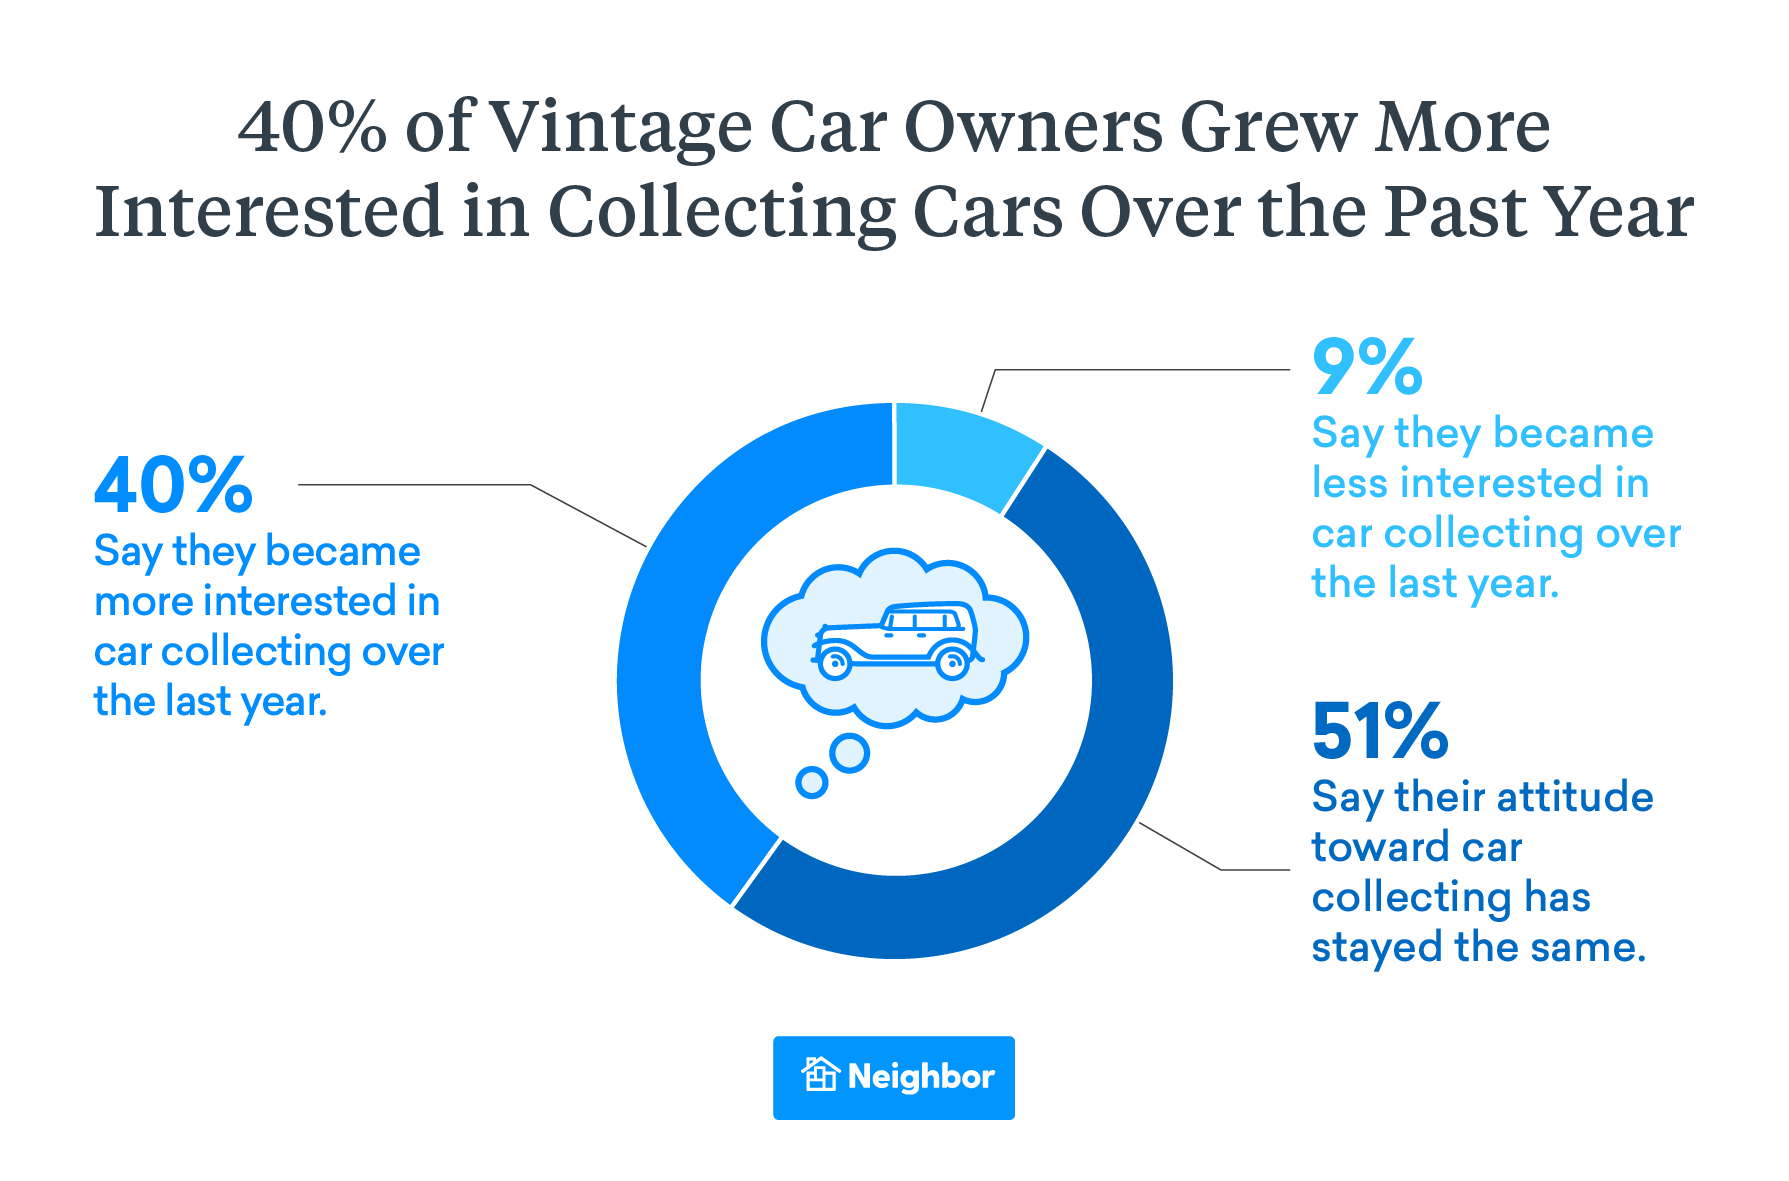 Vintage Car Owners Interested in Collecting